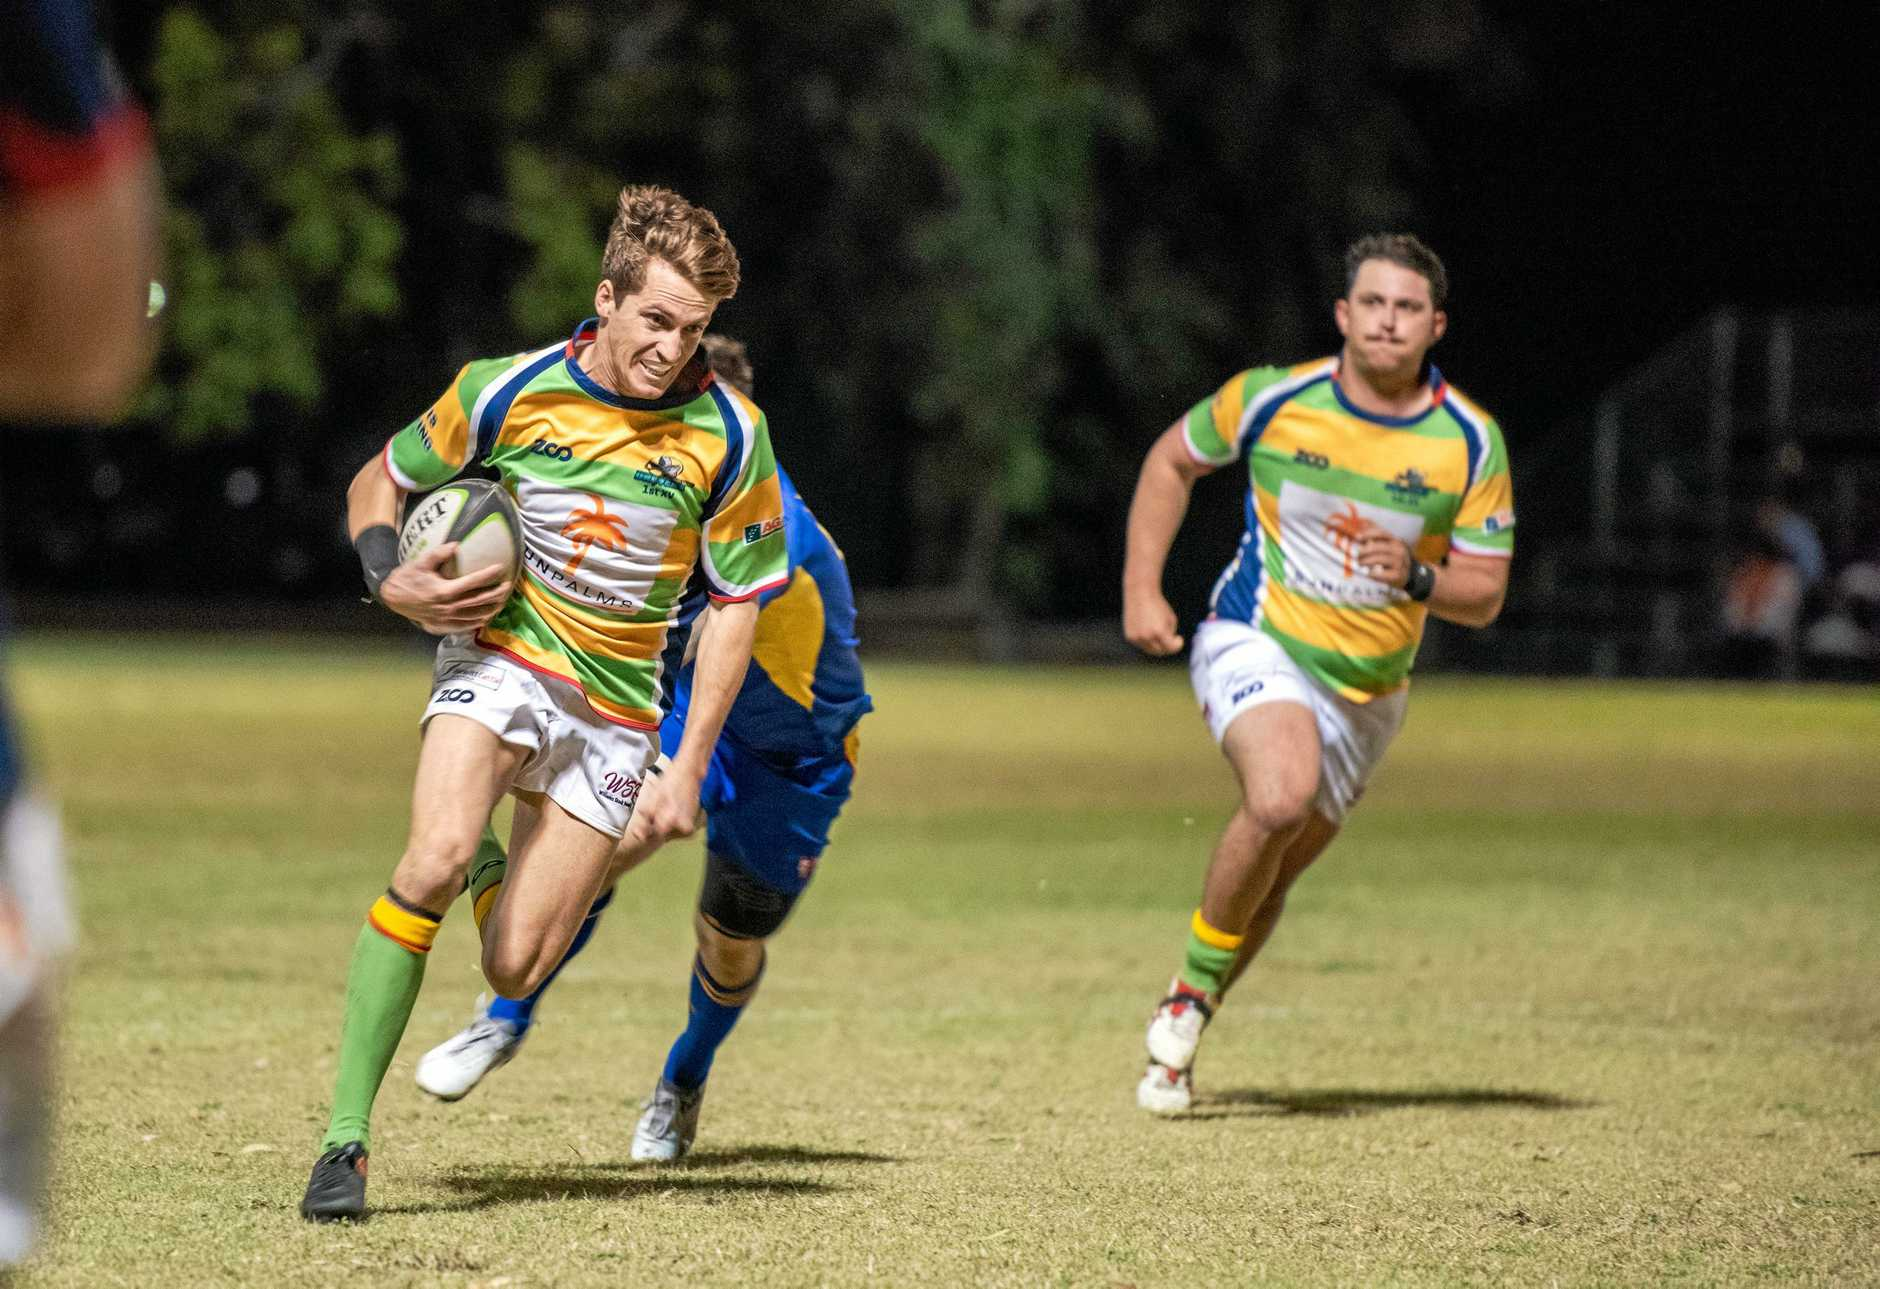 FINALS FEVER: Dawson Valley winger George Stacey in full flight in his team's semi-final win over Gladstone Grufs.